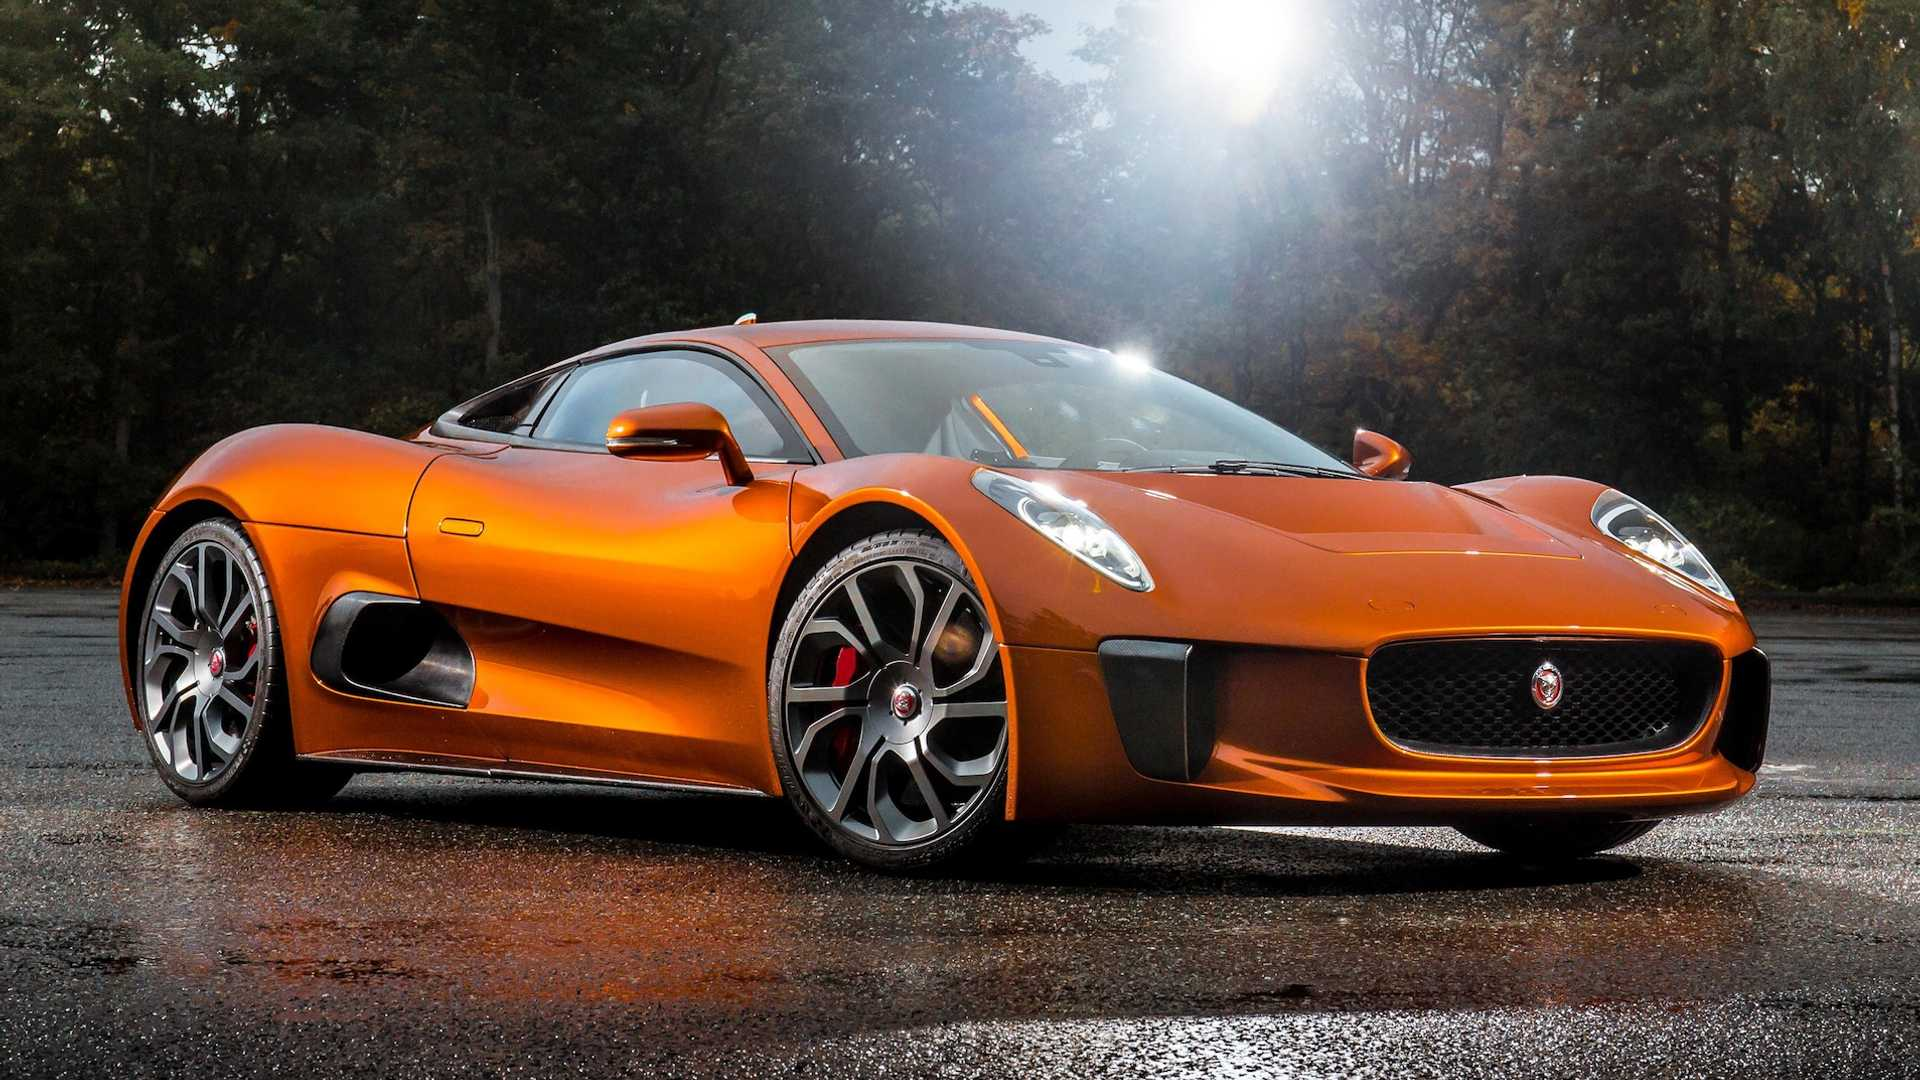 Jaguar Hints At C-X4 Styling For Next-Gen, Mid-Engined F-Type